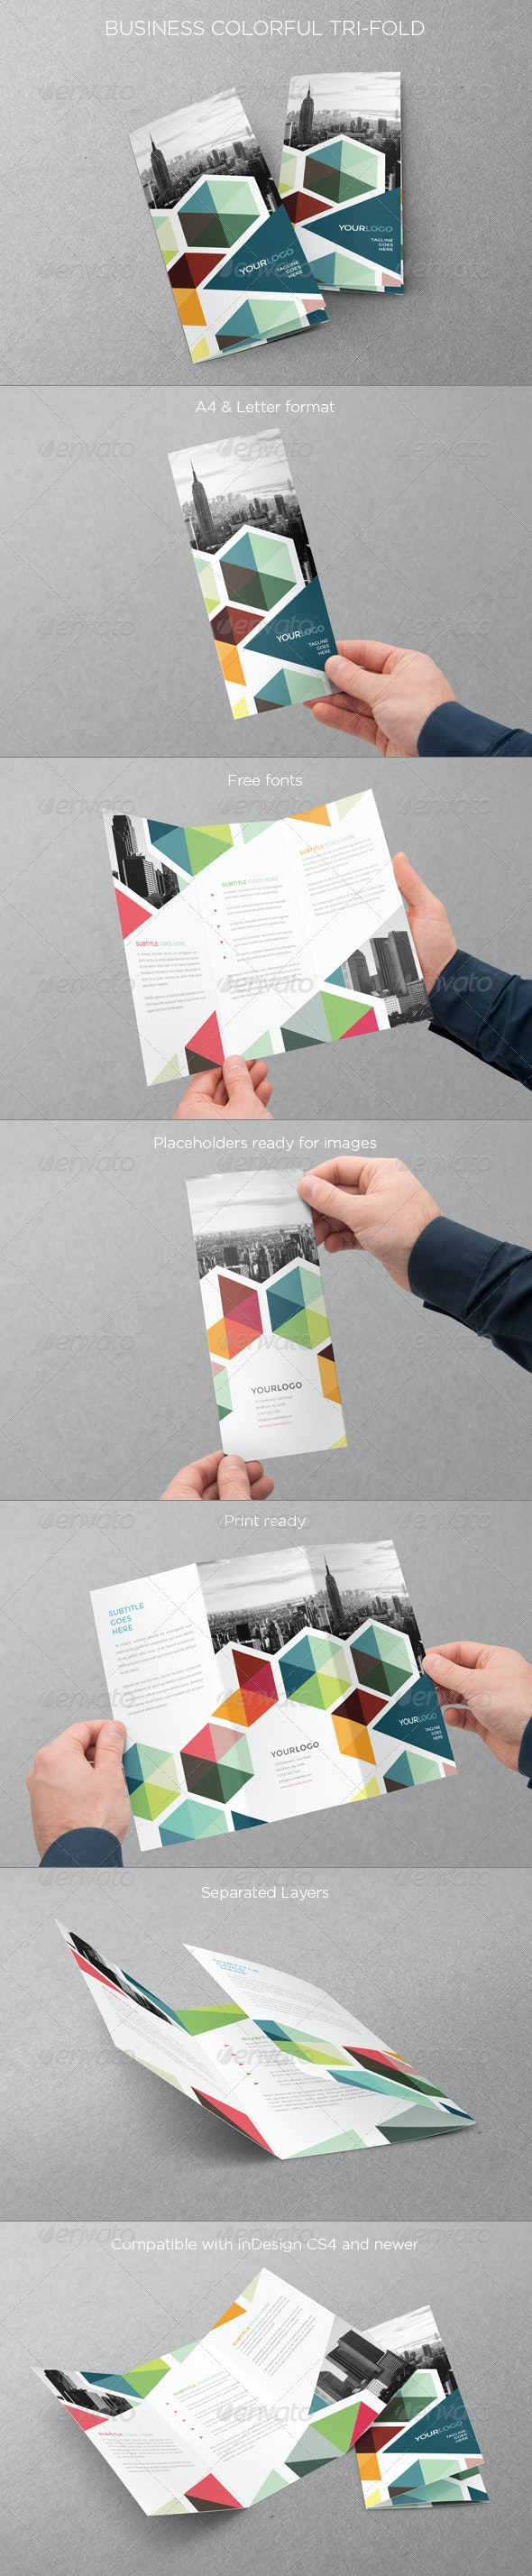 Business Colorful Trifold - Brochures Print Templates